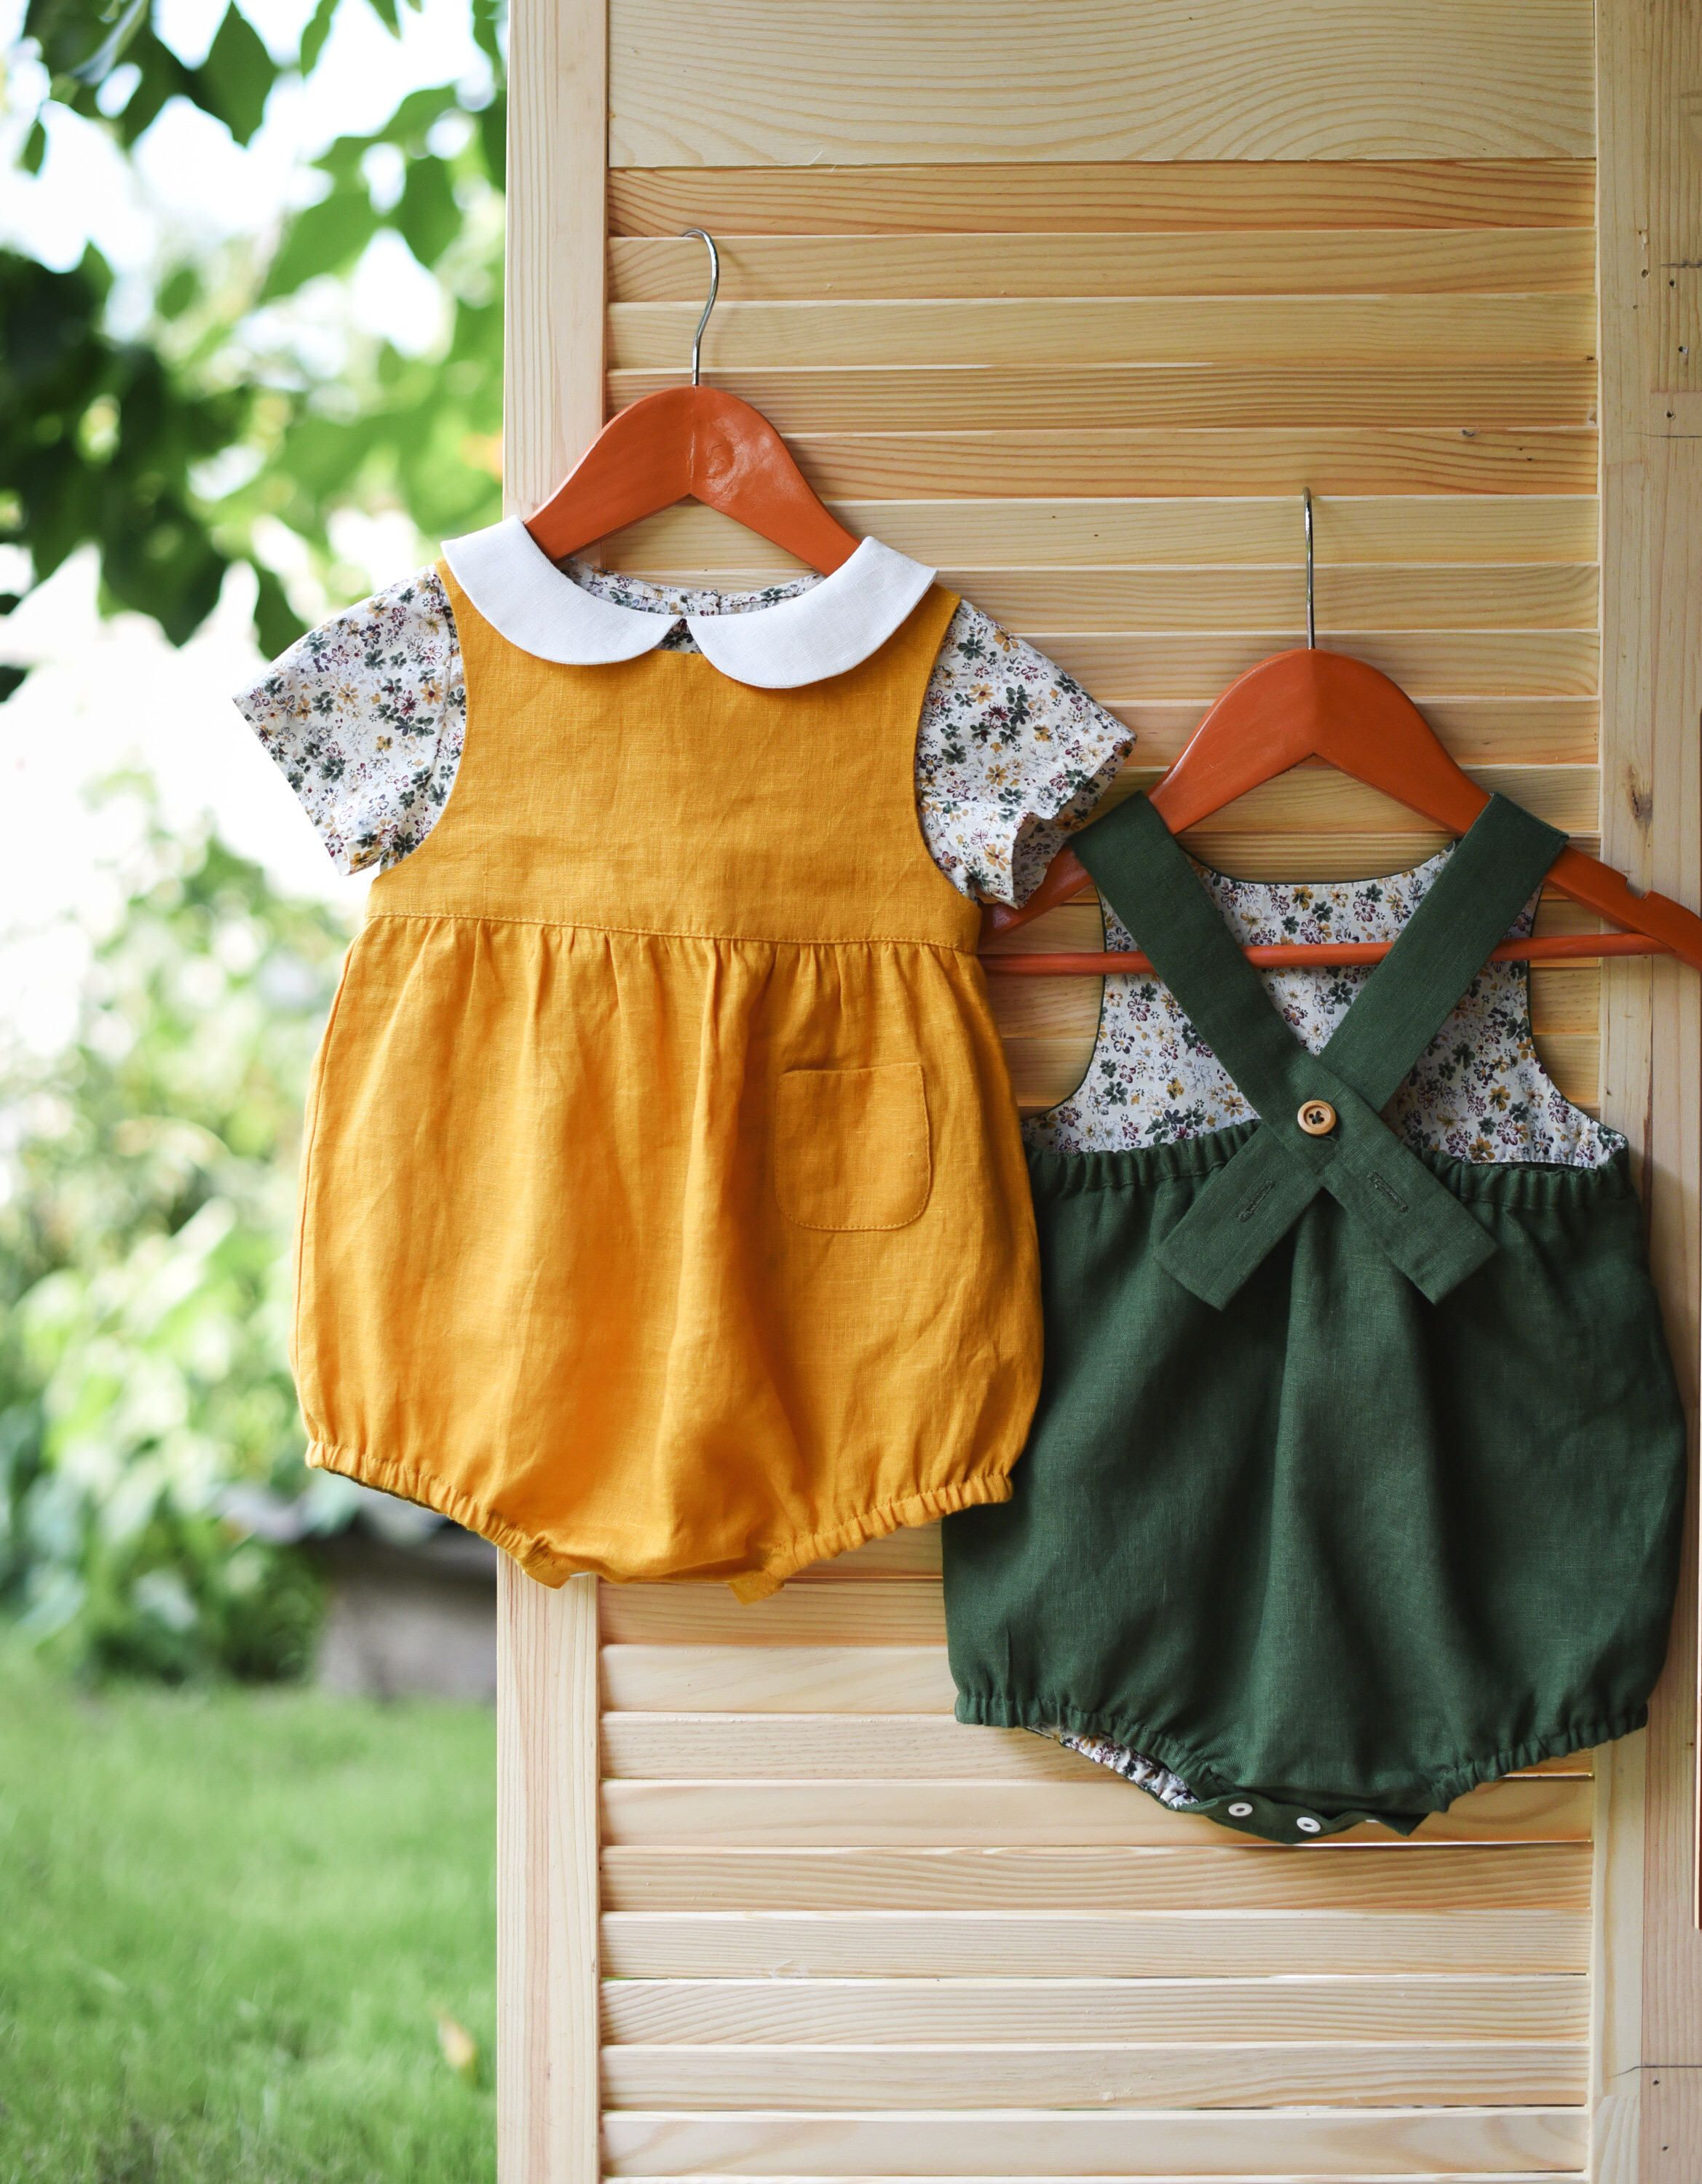 b0b56e345 Baby Outfit, Girl Outfit, Linen Romper, Floral Top, Peter Pan Collar, Girls  , Baby Romper, Mustard Romper, Baby Clothes